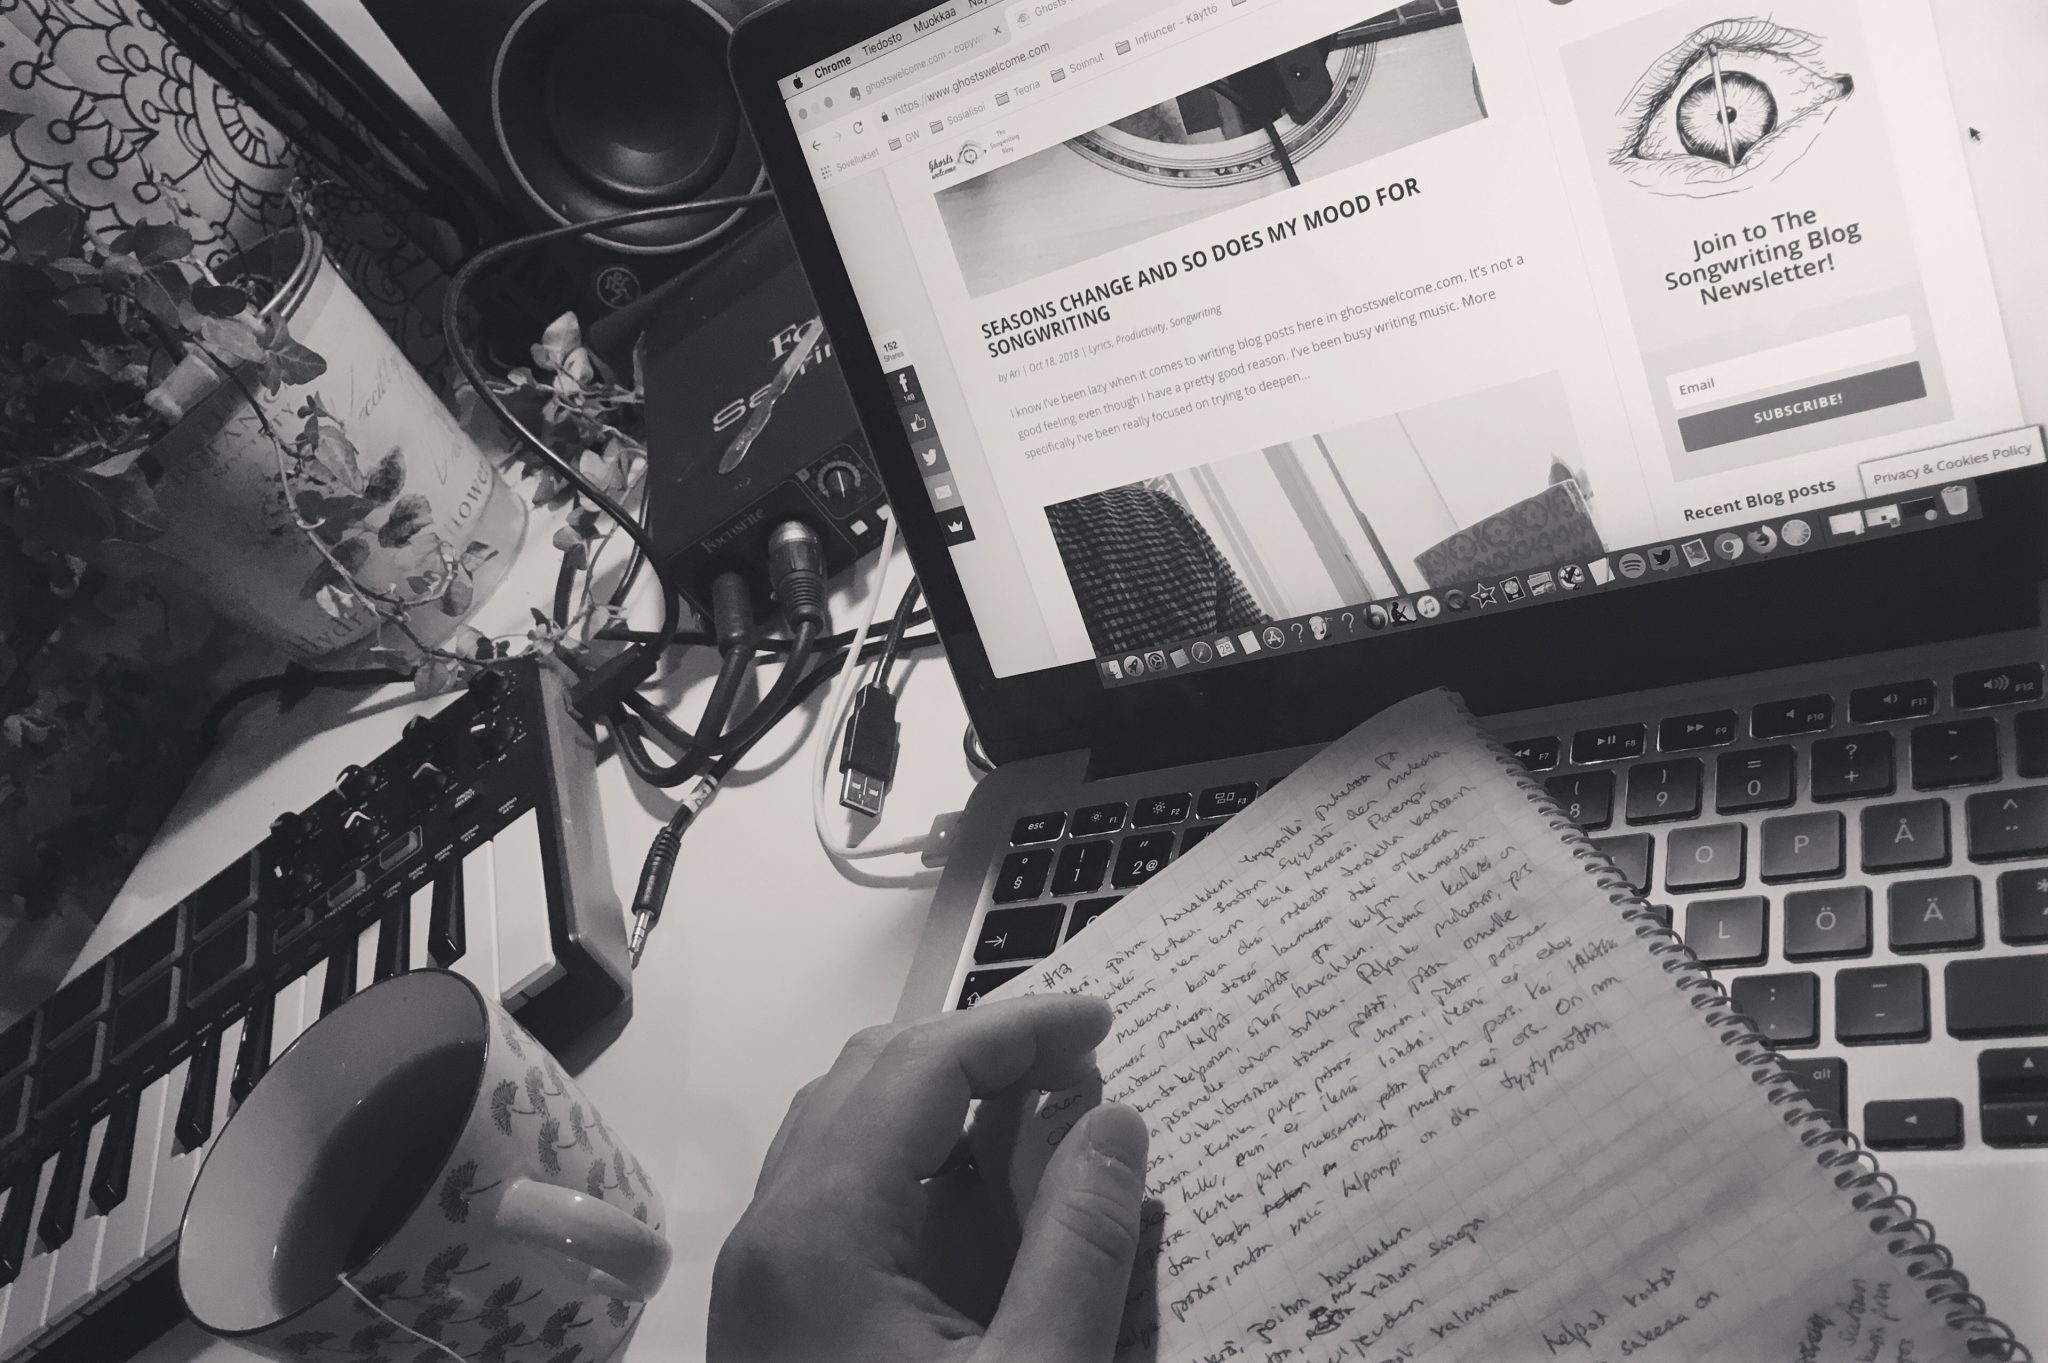 Writing with pen & paper vs. computer